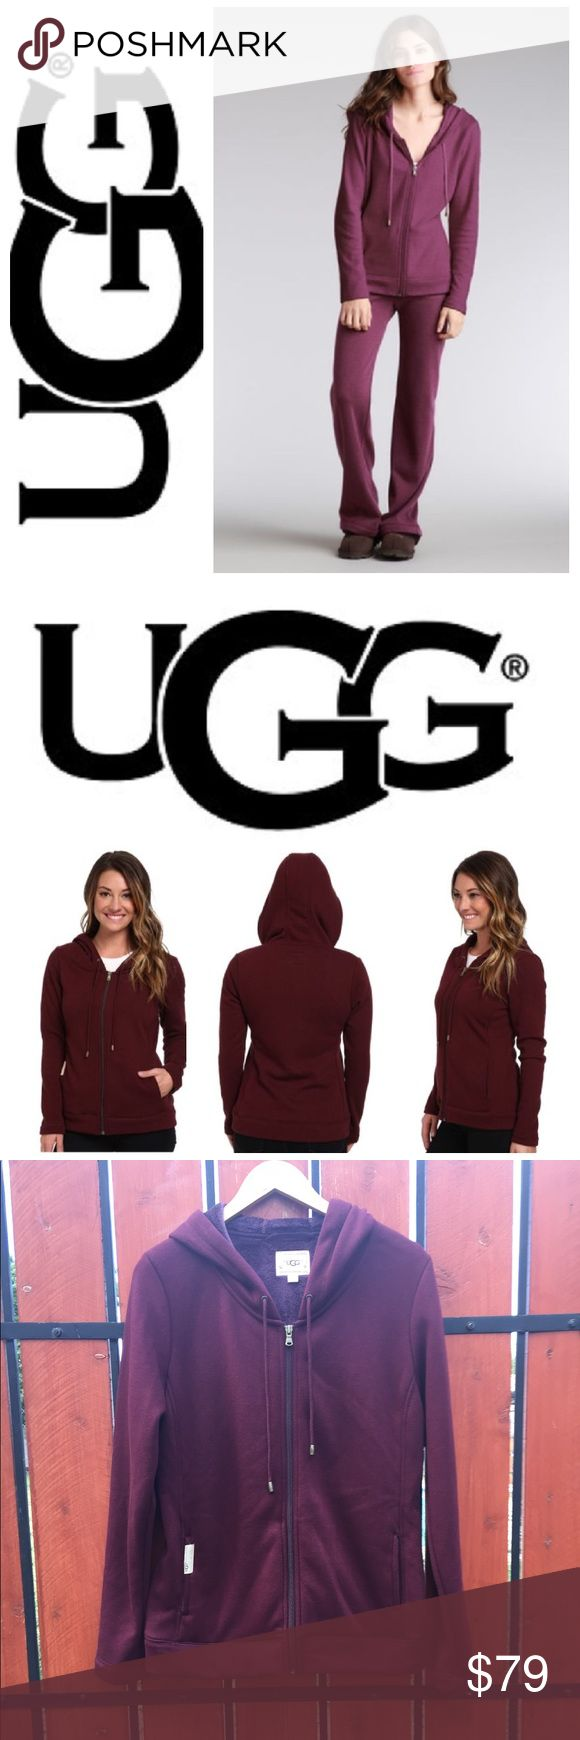 NEW! UGG Australia Benson hoodie in port Introducing the softest hoodie on the planet!  Just in time for the season, this incredibly soft, super comfy zip up hoodie will make the ideal jacket for any occasion or a fabulous gift!  The pretty shade of port is neutral enough to wear with so many shades & the jacket is so soft,  you may never want to take it off!  Size is Large.  Brand new, never worn!  100% authentic!  No trades please. UGG Tops Sweatshirts & Hoodies